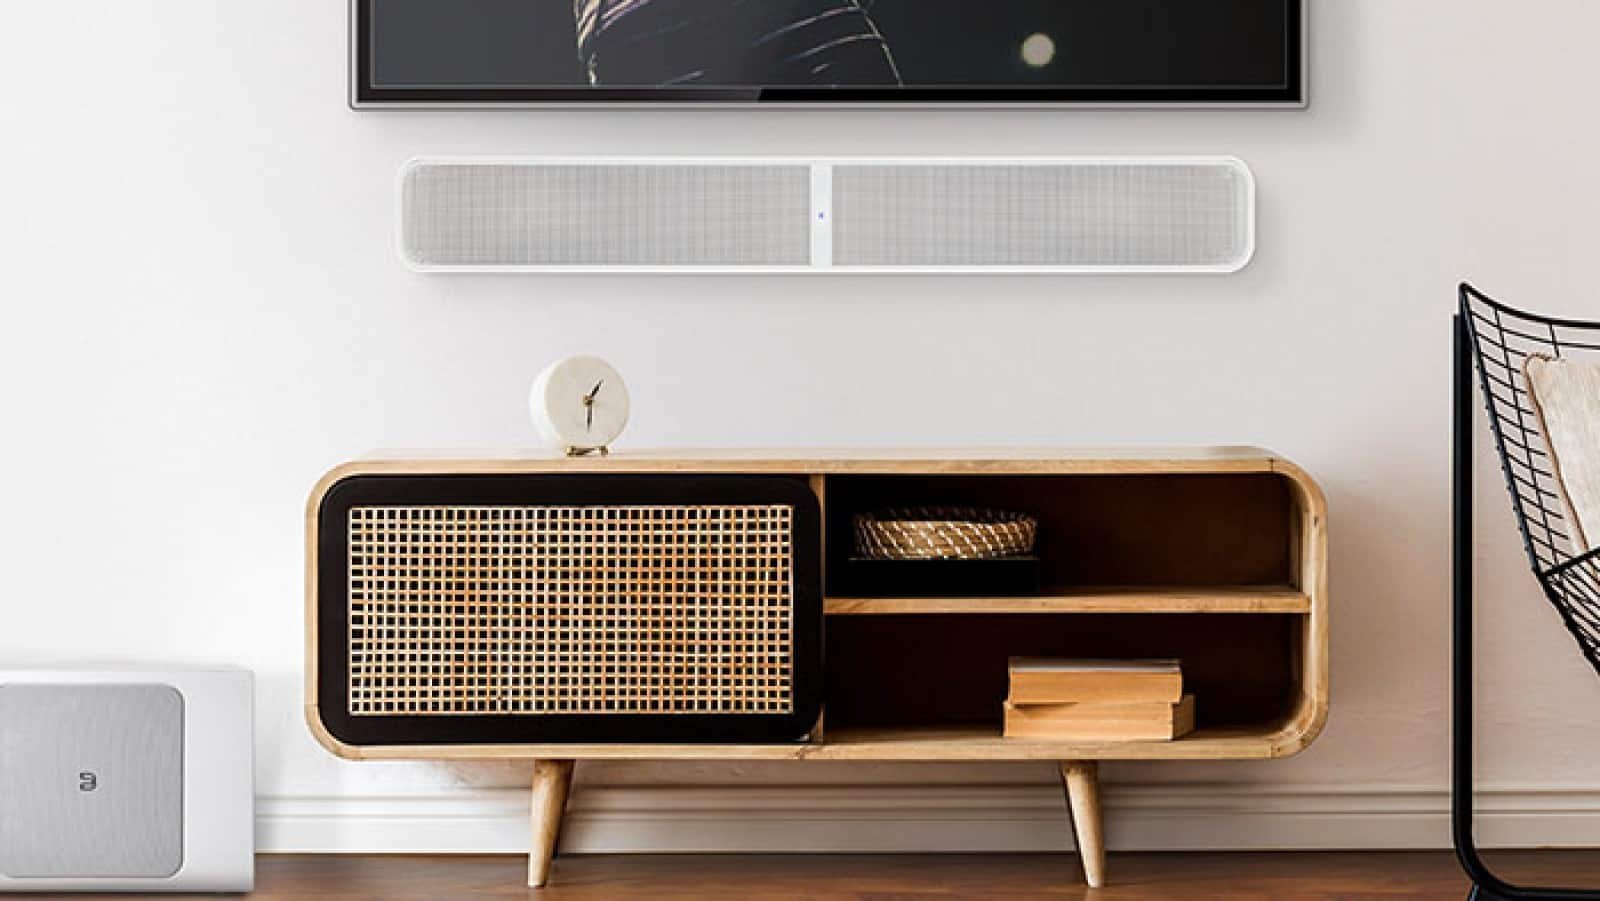 bluesound pulse soundbar plus mounted on wall between a TV and the floor